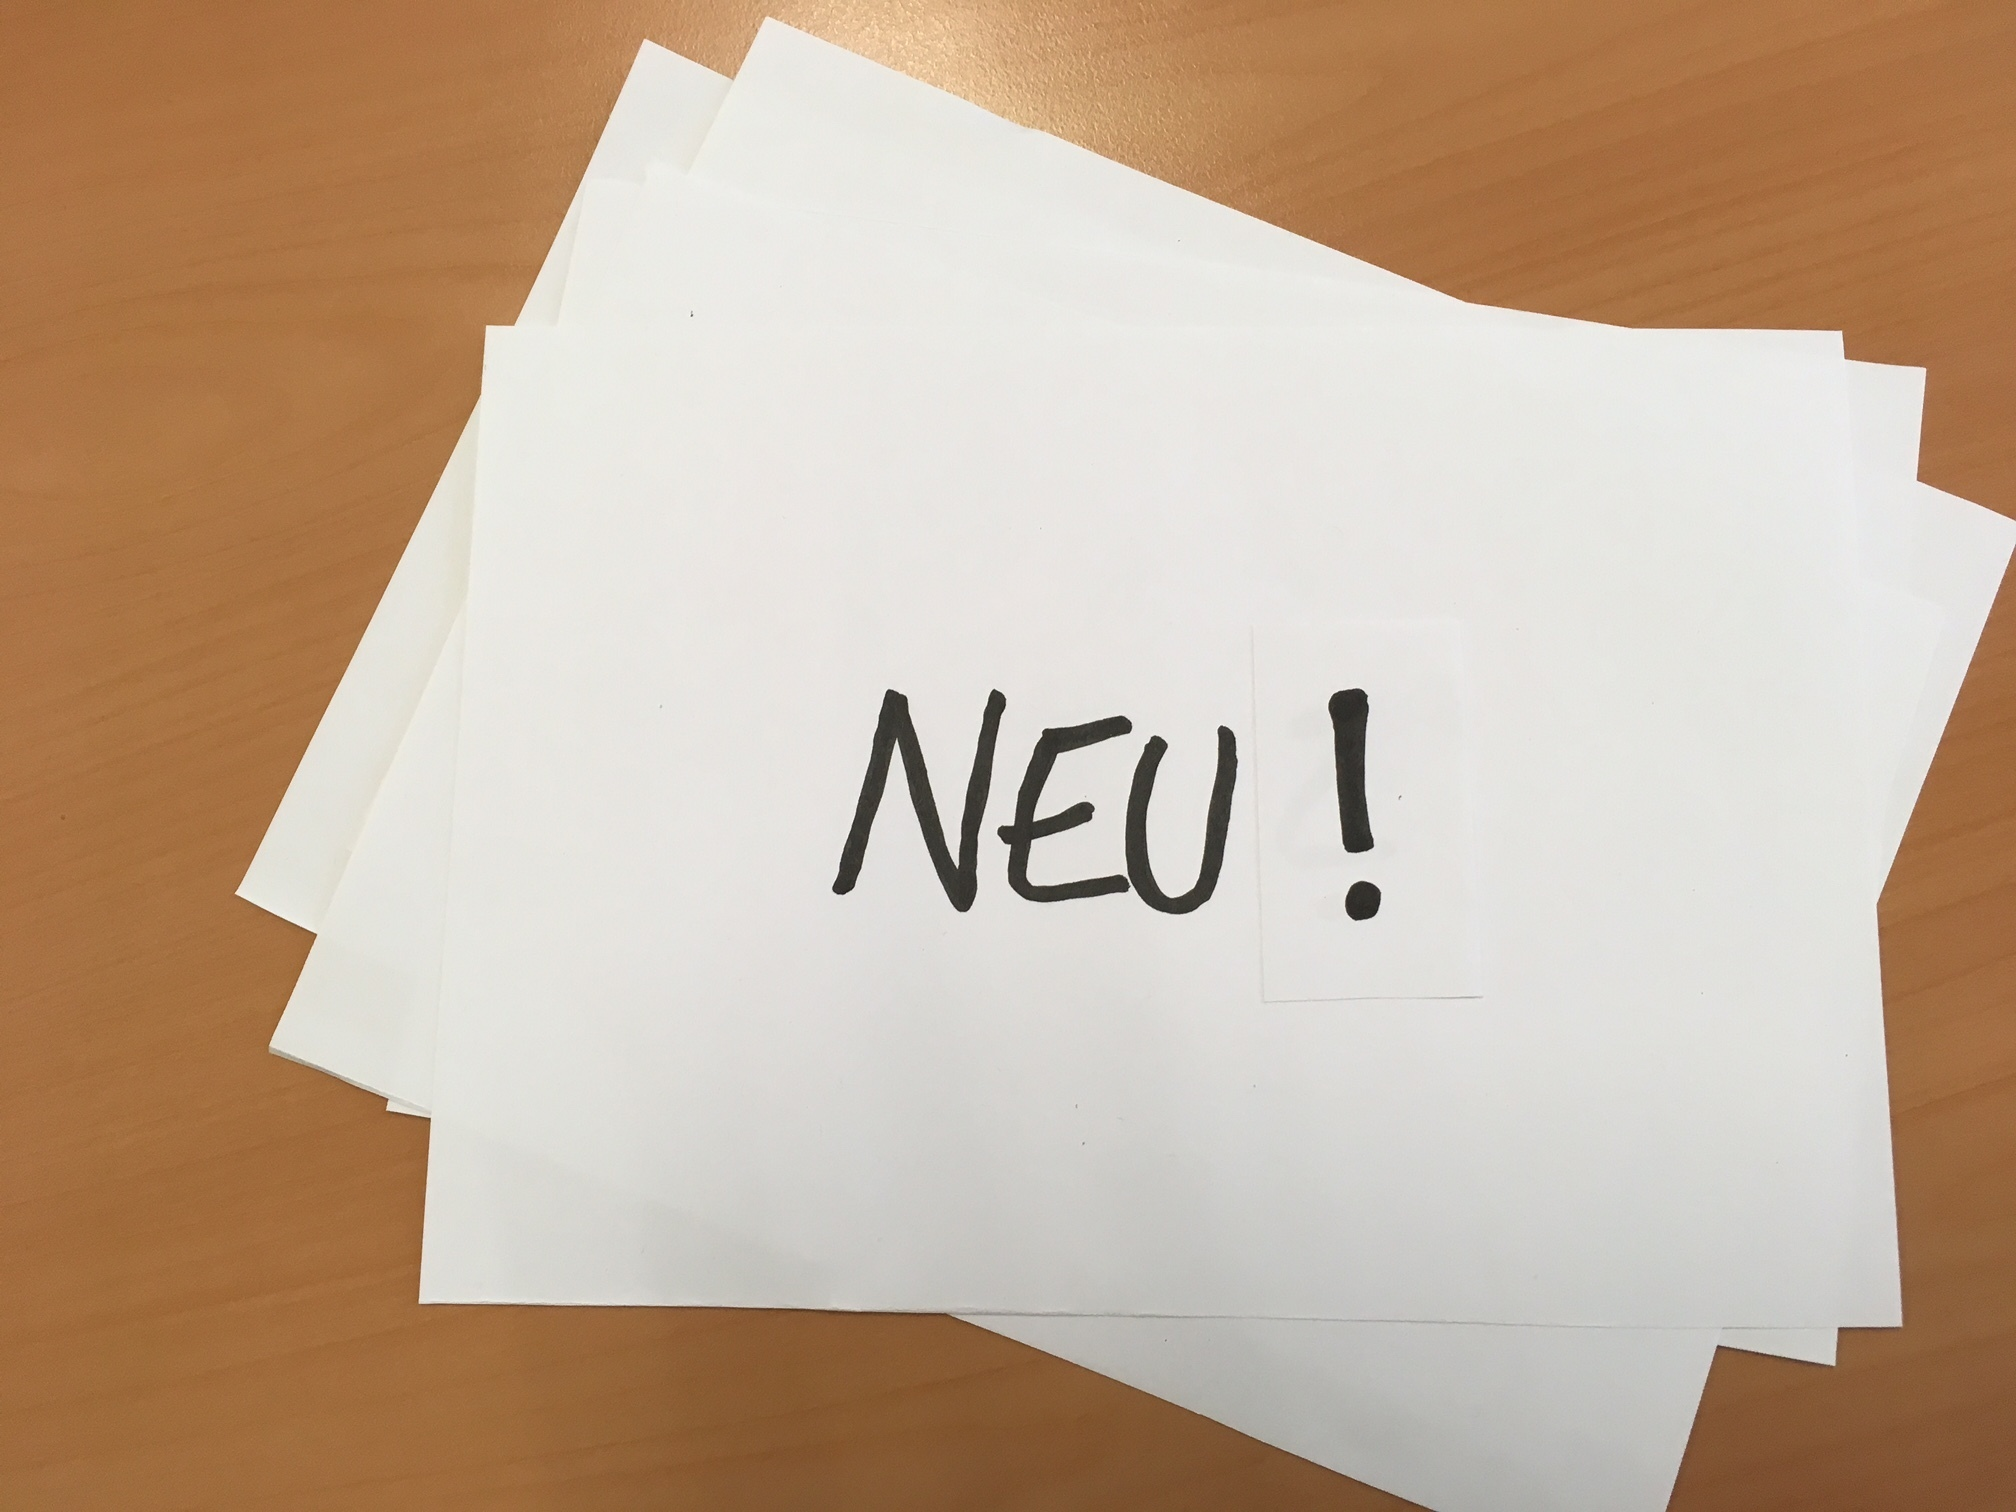 """Neu!"" - black writing on white background"